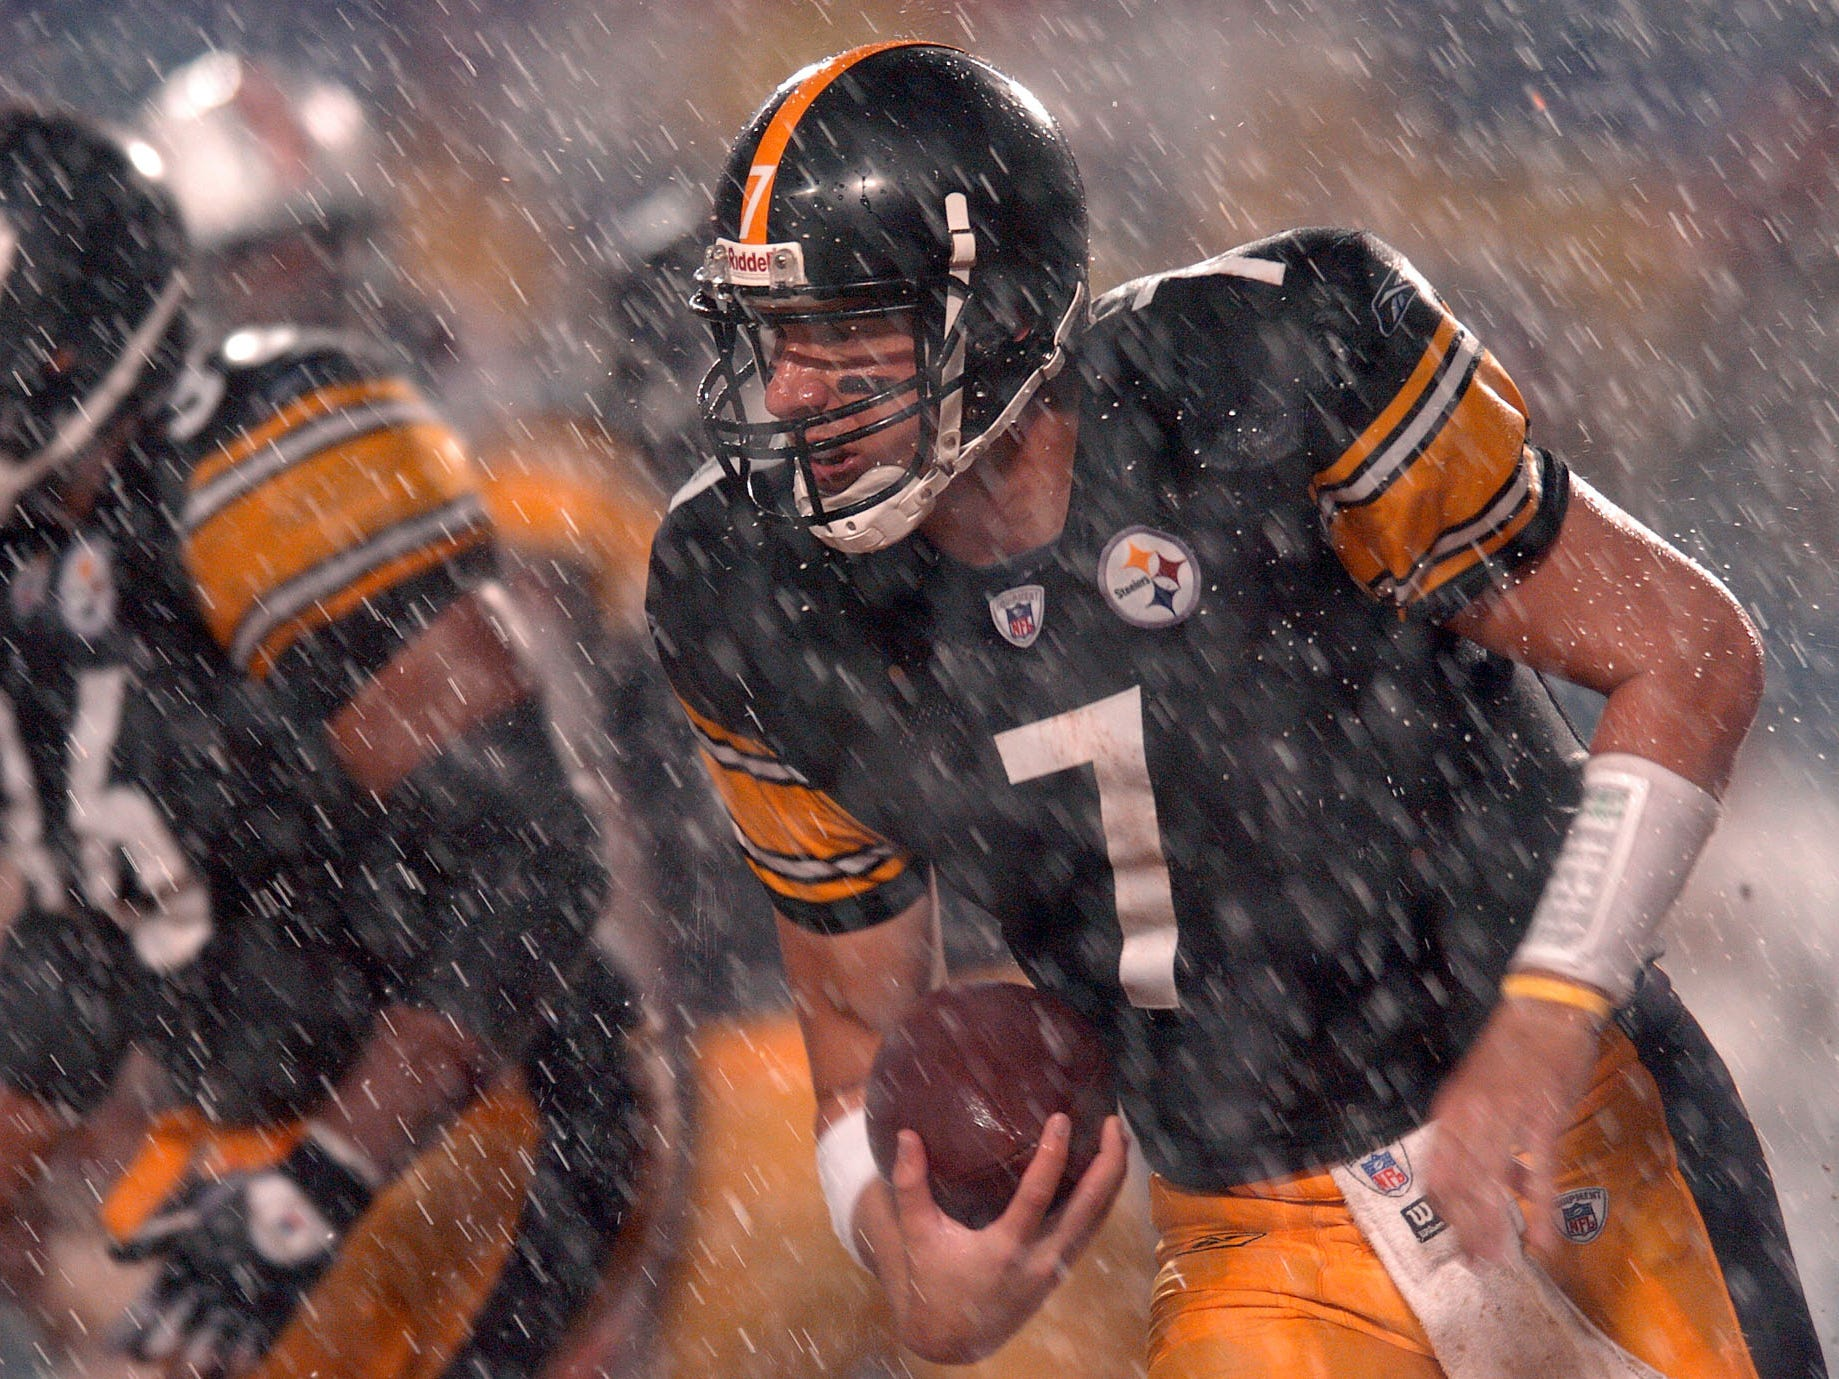 Sept. 26, 2004: Pittsburgh Steelers quarterback Ben Roethlisberger scrambles out of the pocket against the Miami Dolphins during a downpour in at Pro Player Stadium in Miami. The Steelers won the game, 13-3.